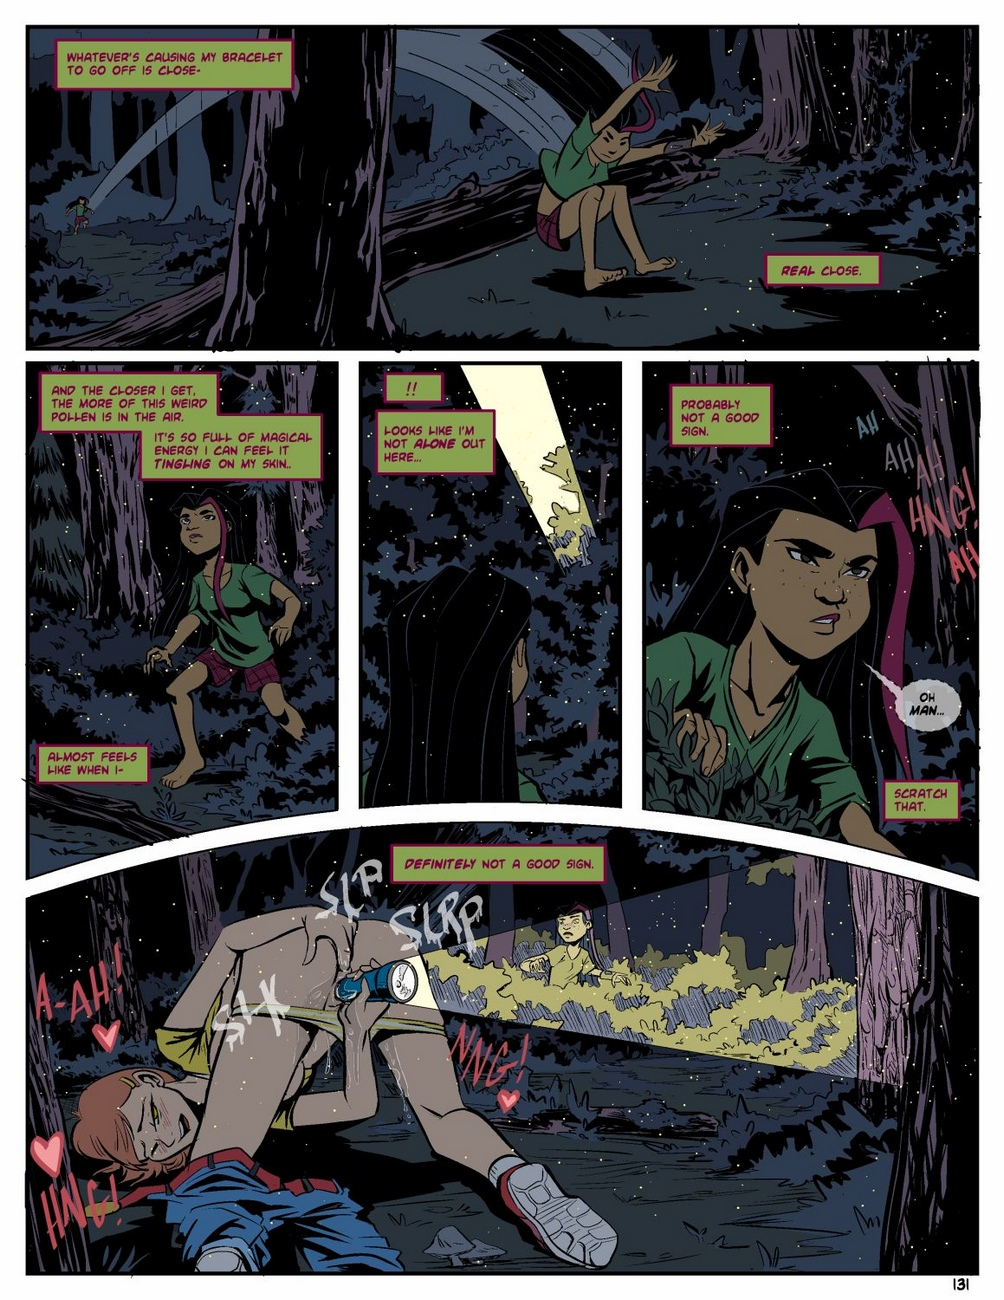 Camp Sherwood [Mr.D] (Ongoing) - part 9